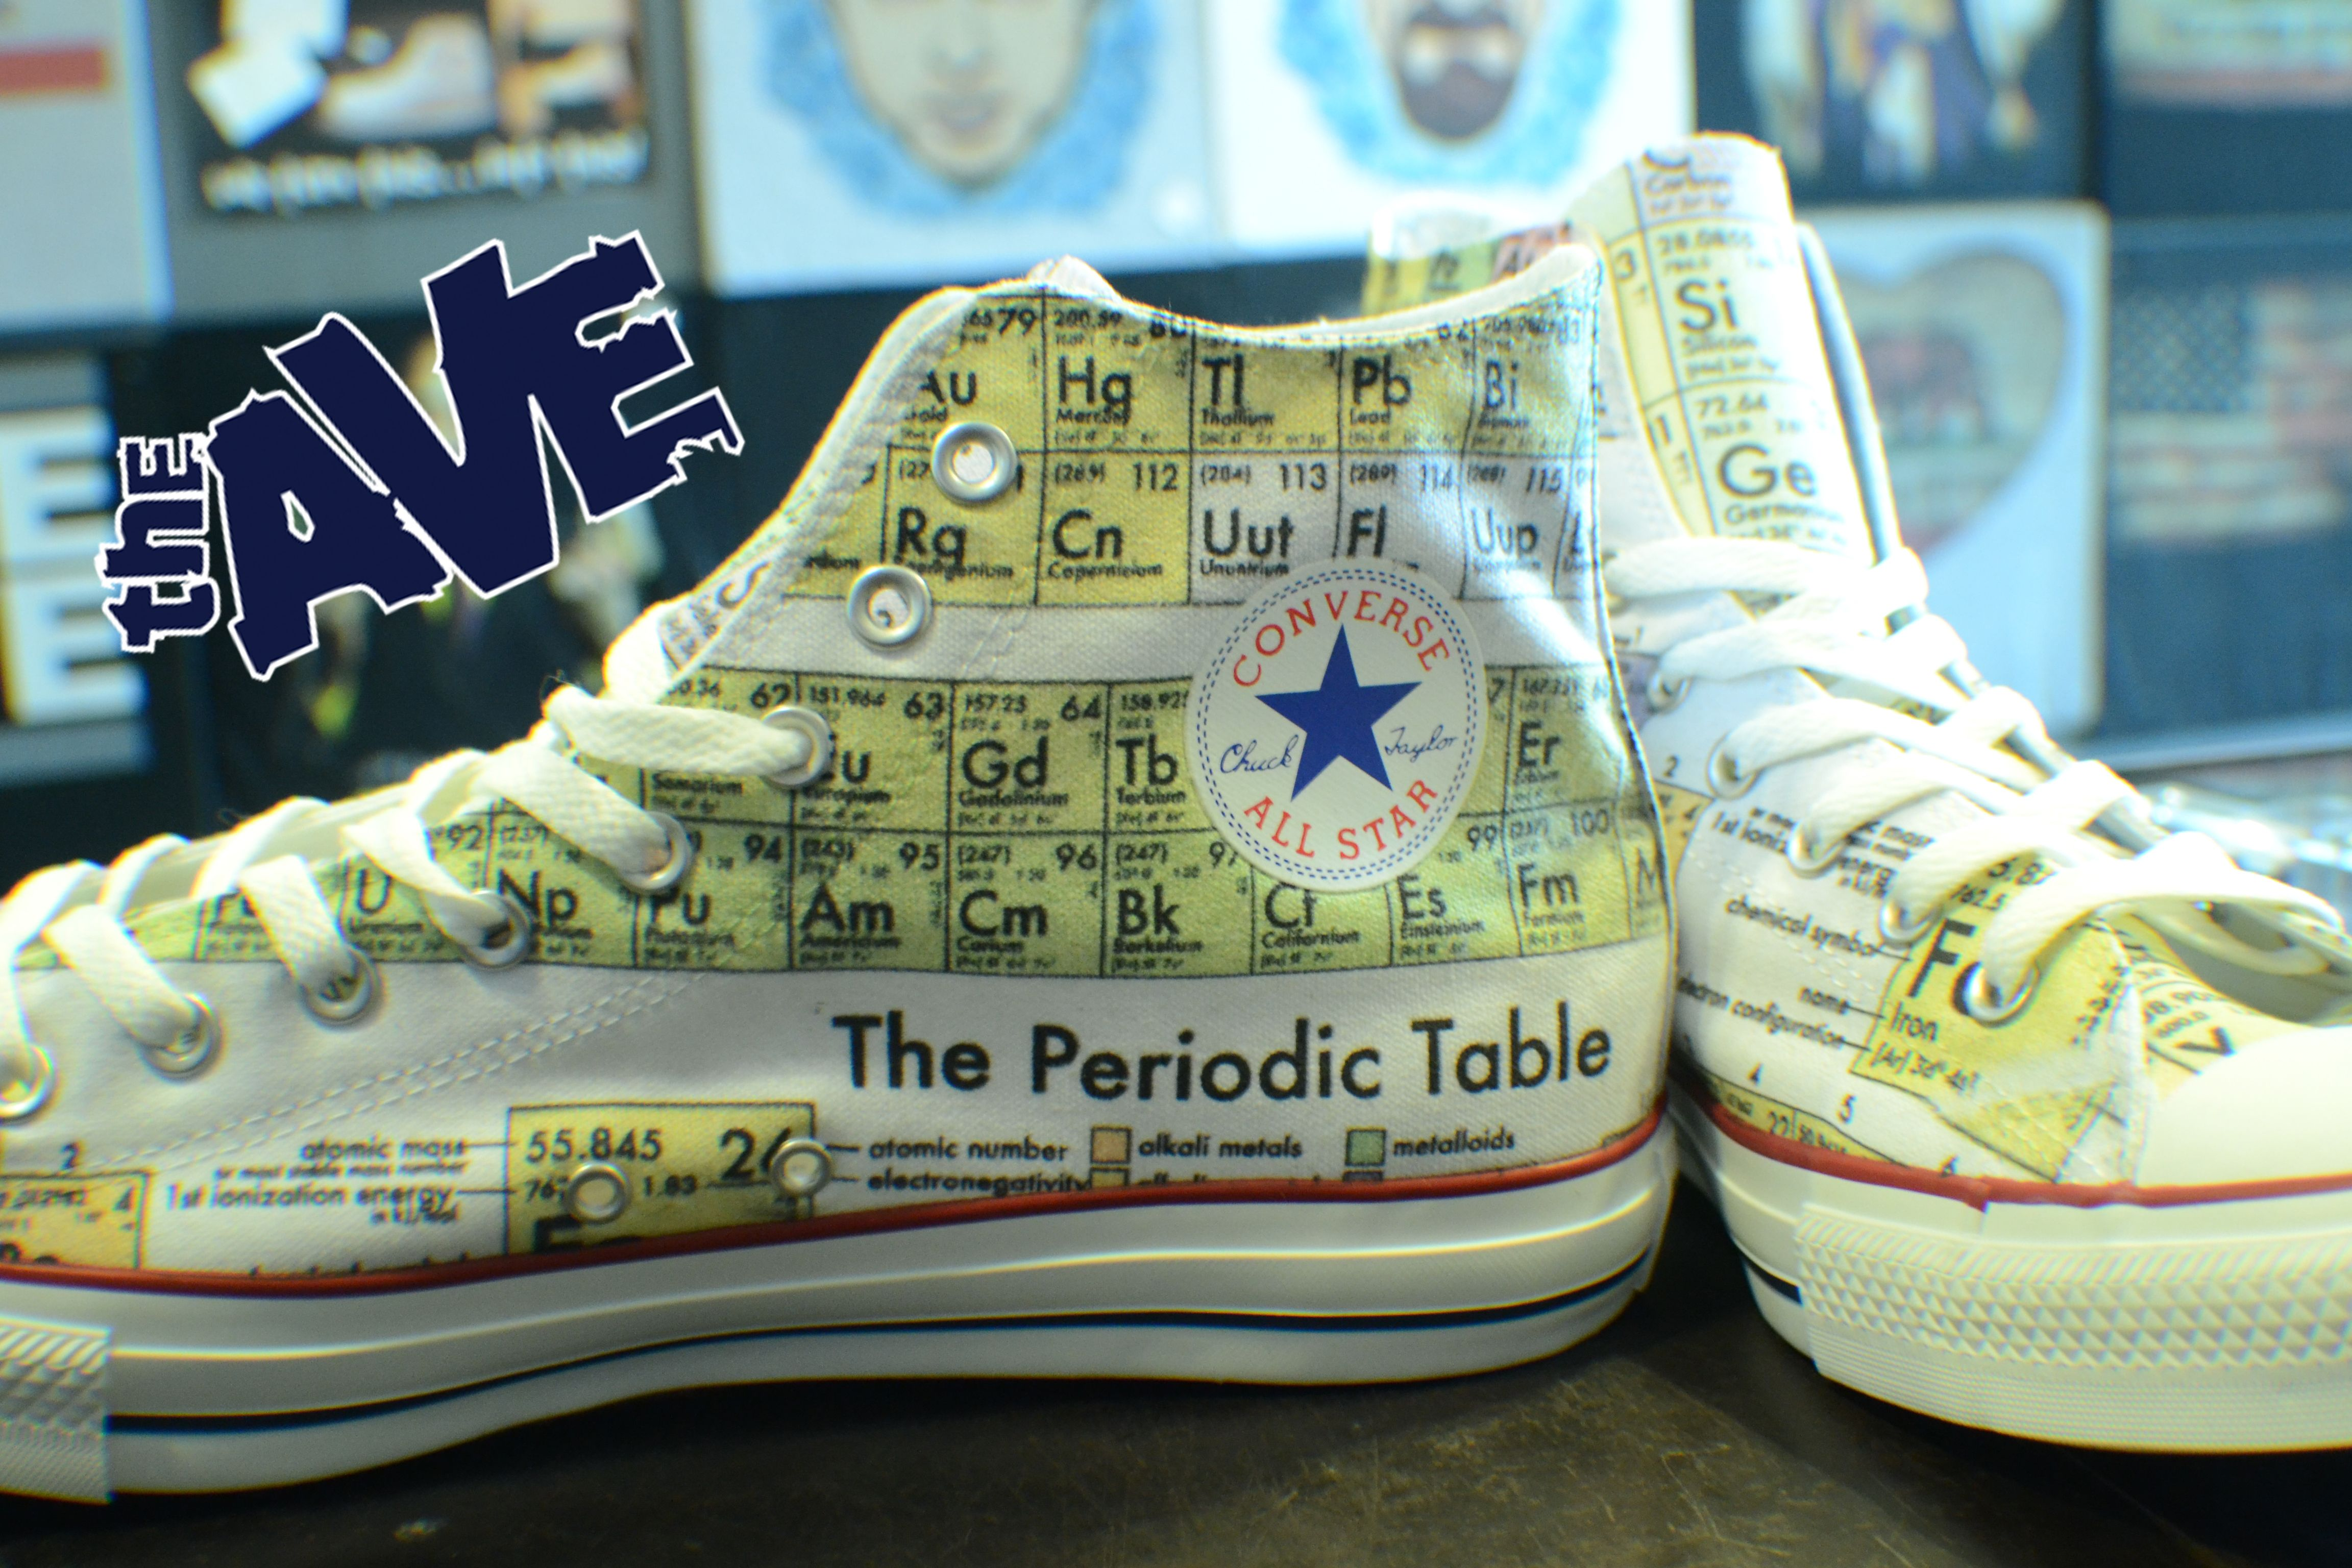 PeriodicTableShoes.jpg 4 608×3 072 pixels